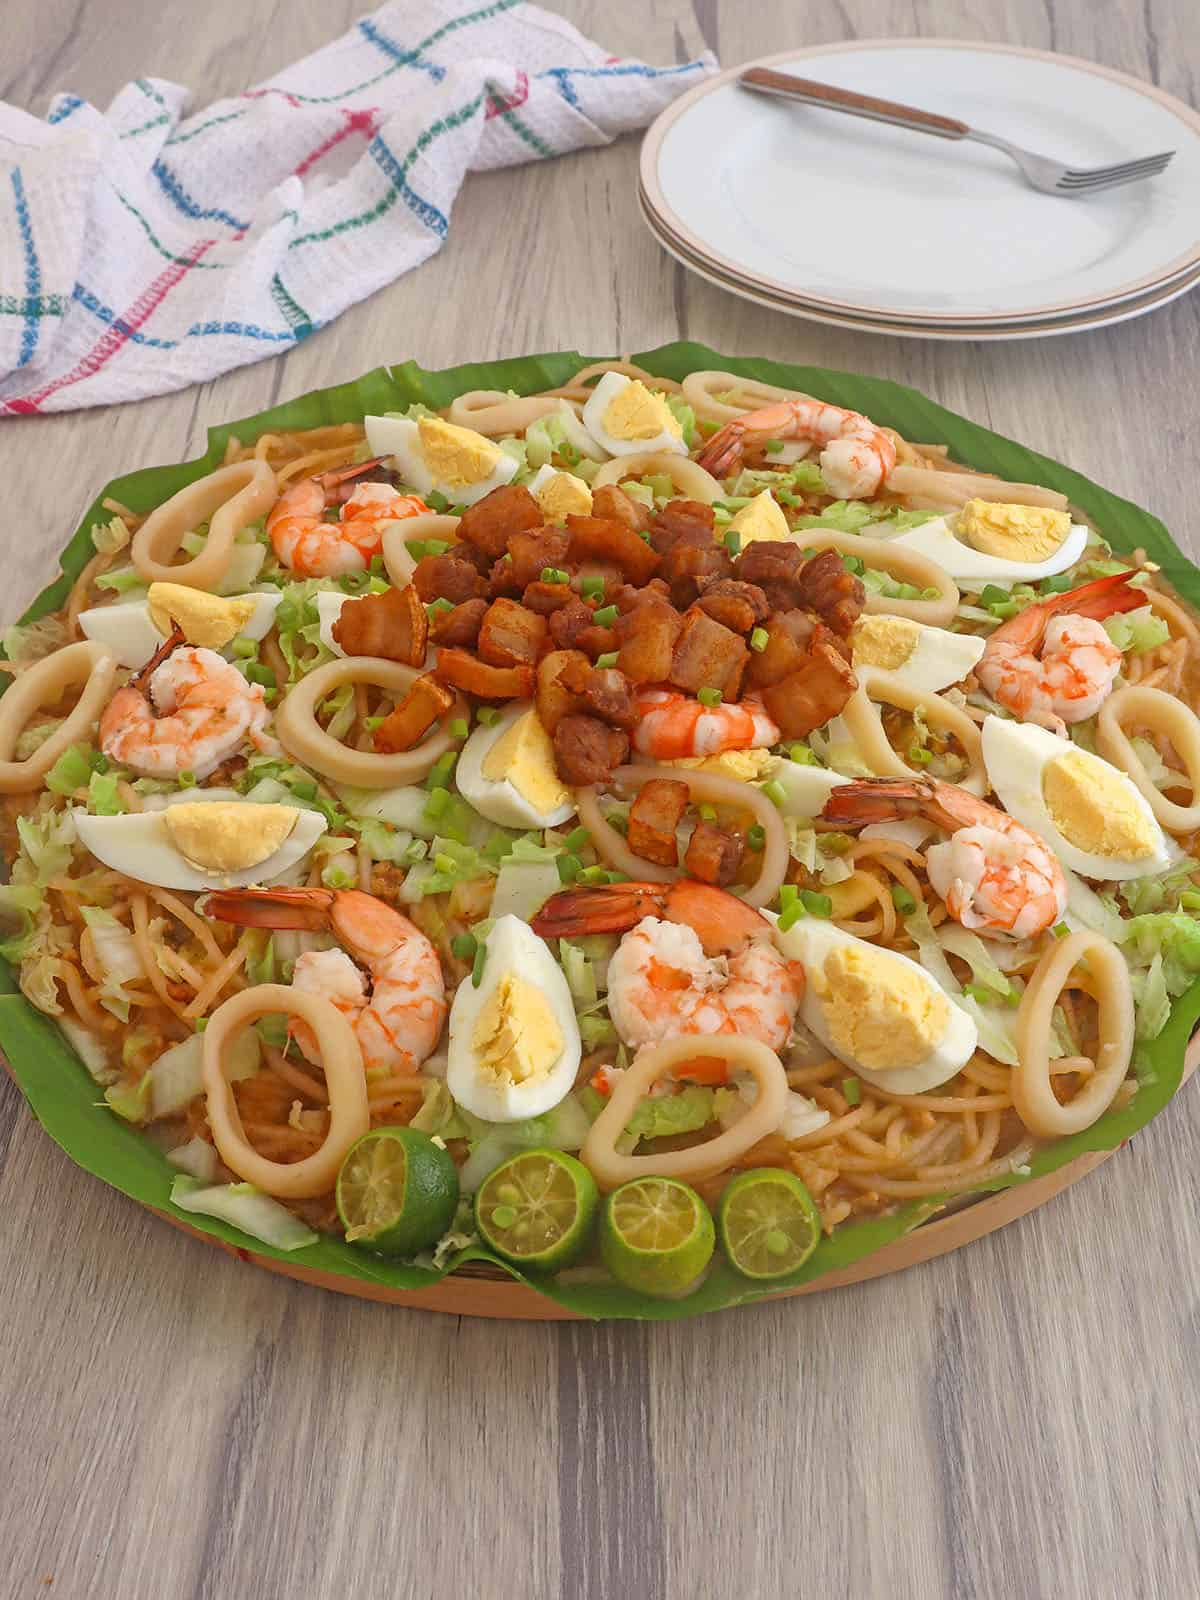 Pancit Malabon with assorted toppings on a bilao